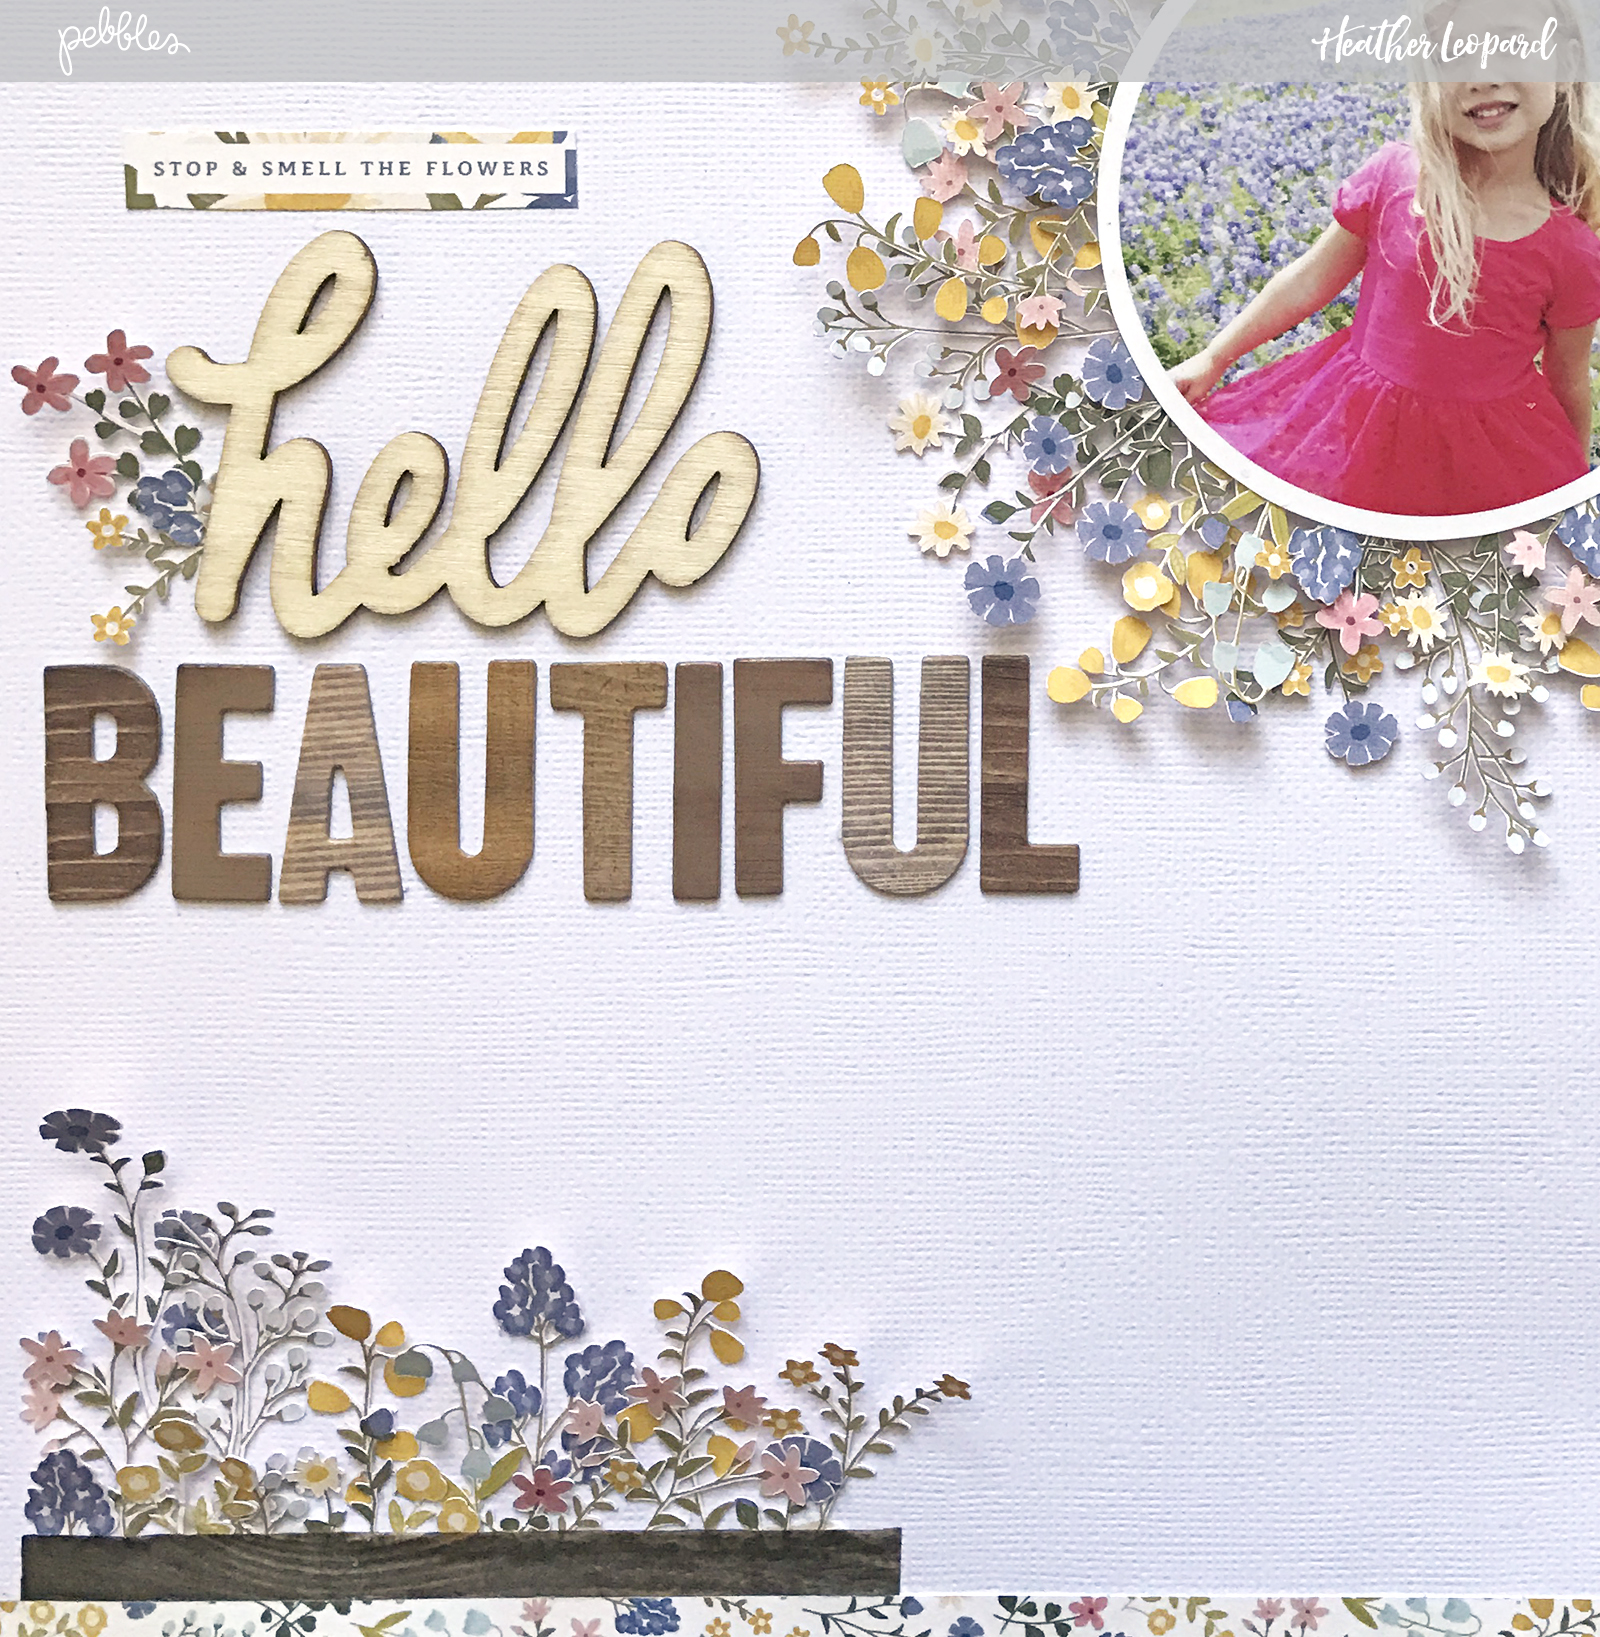 Fussy cut flowers layout by @heatherleopard using the new #SimpleLife collection by @pebblesinc #madewithpebbles #pebblesinc #scrapbook #layout